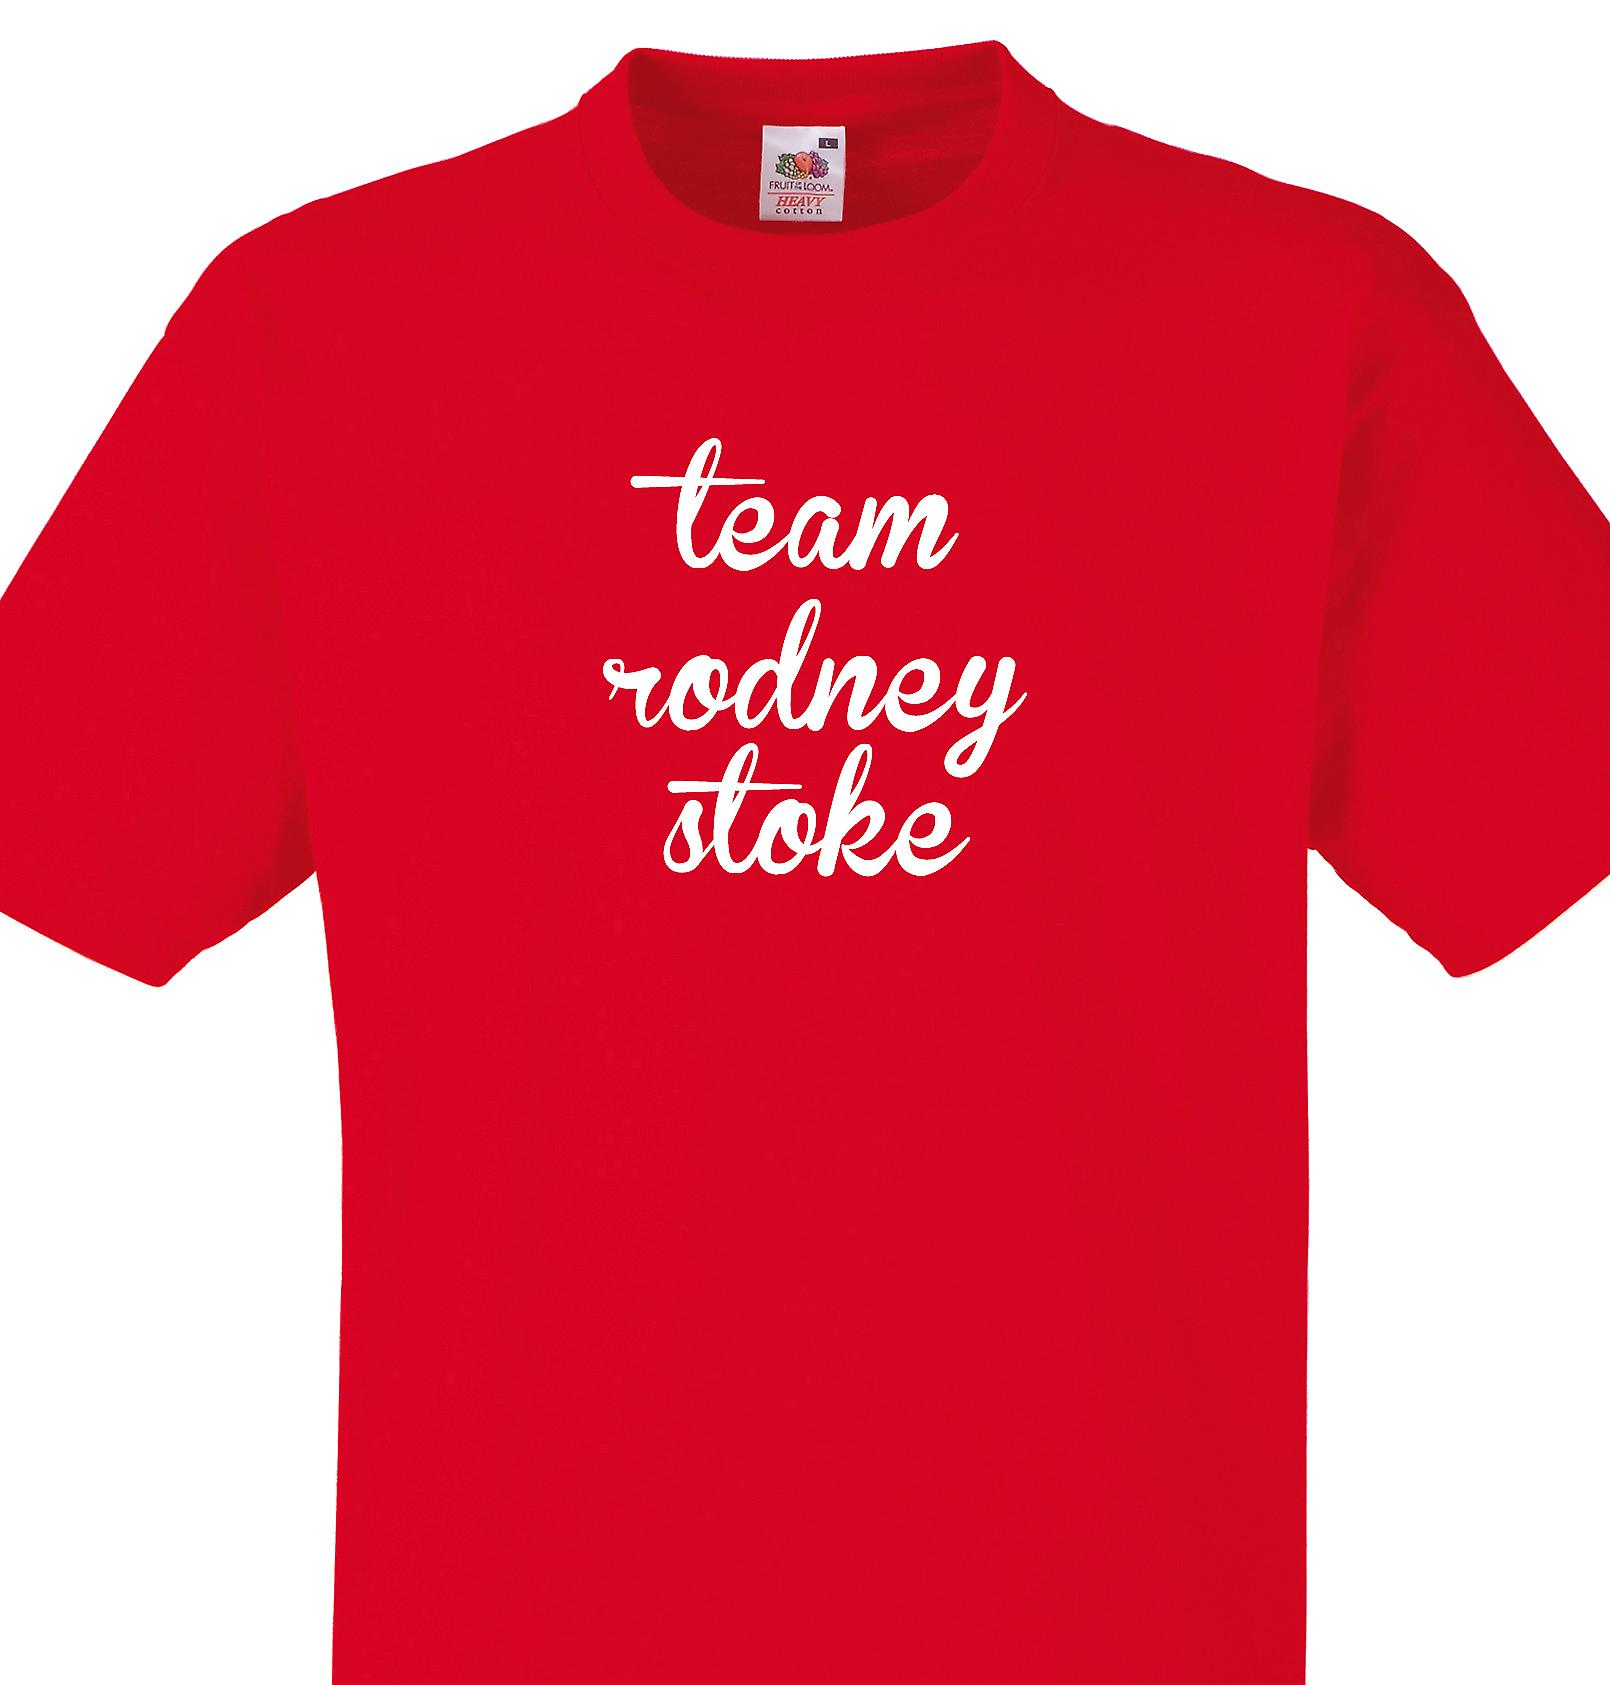 Team Rodney stoke Red T shirt